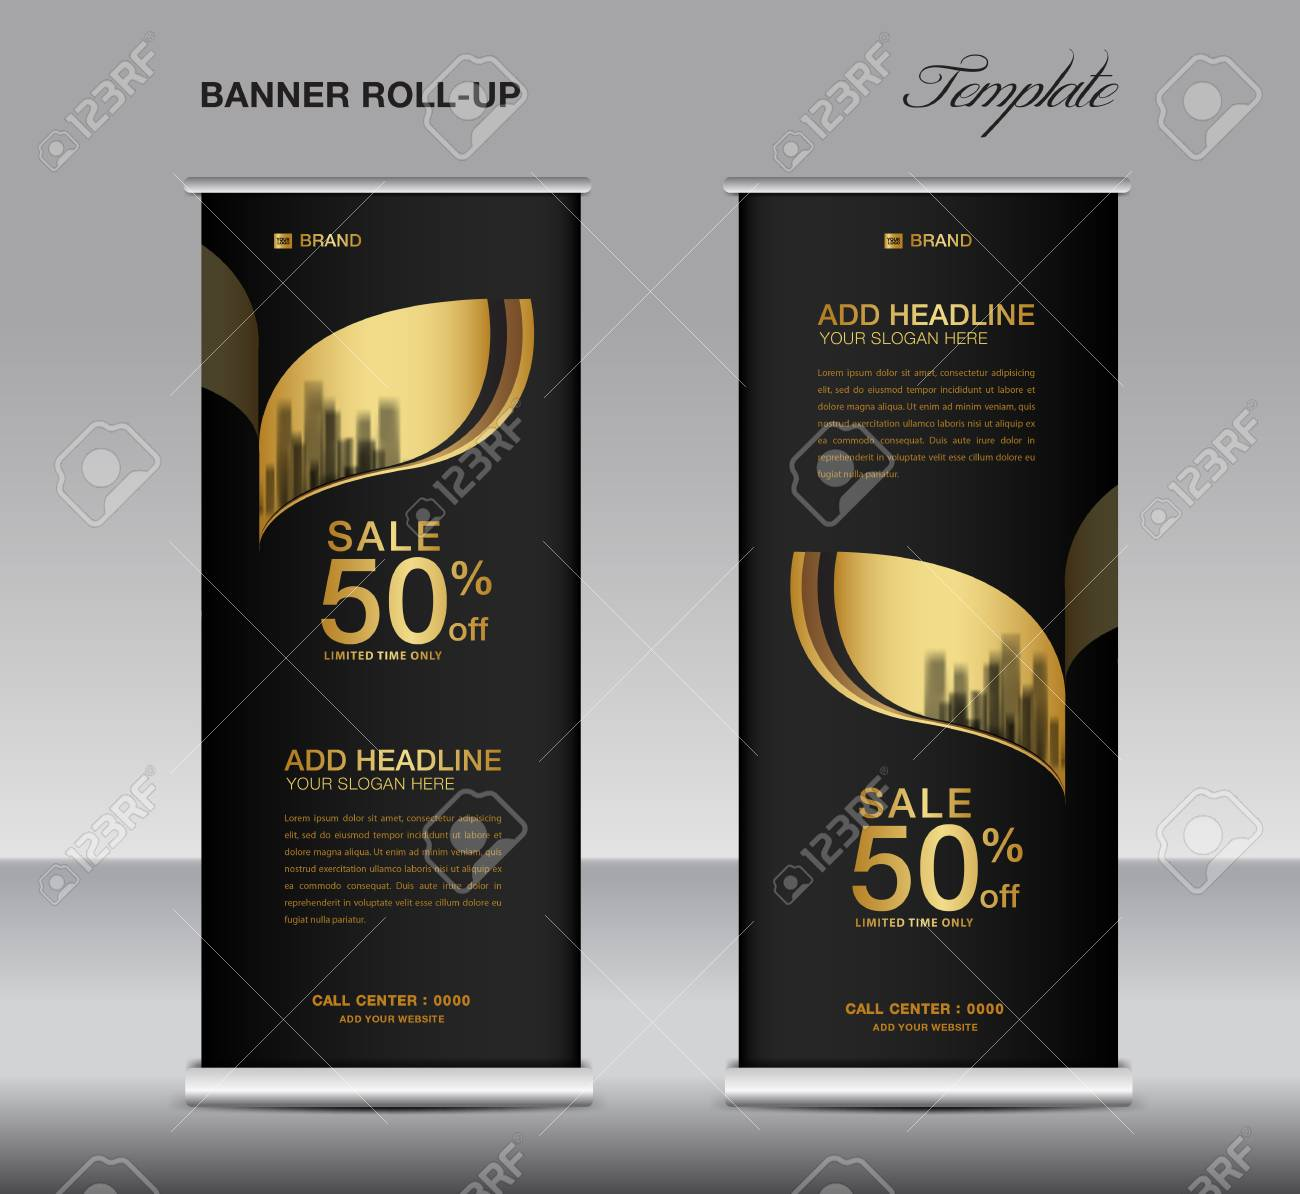 Exhibition Stand Roll Up : Black and gold roll up banner template vector advertisement